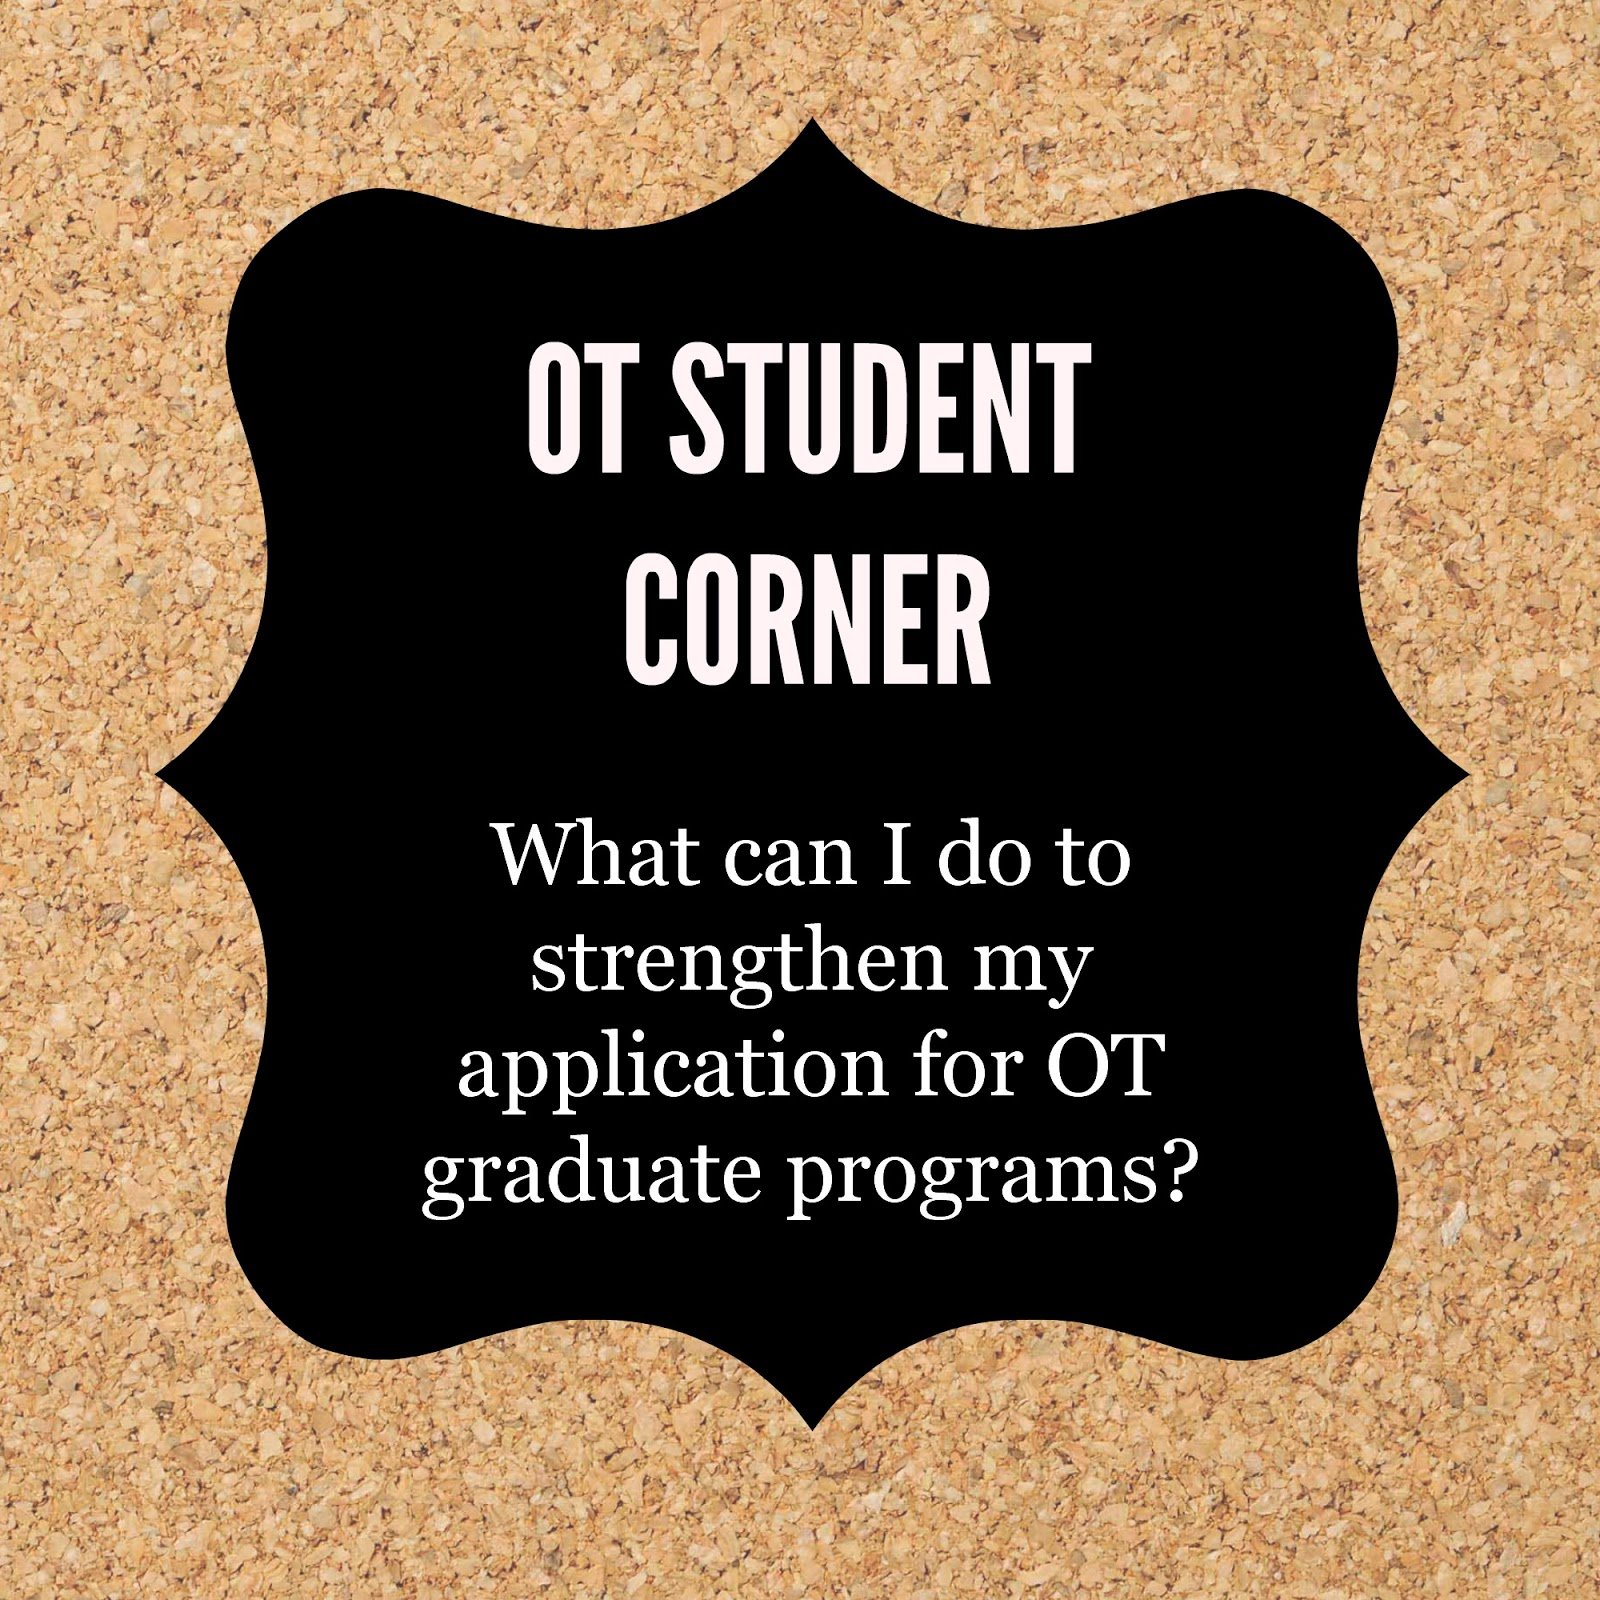 ot cafe ot student corner applying to graduate school i receive a lot of emails from prospective ot students about what they can do strengthen their application for graduate programs in occupational therapy